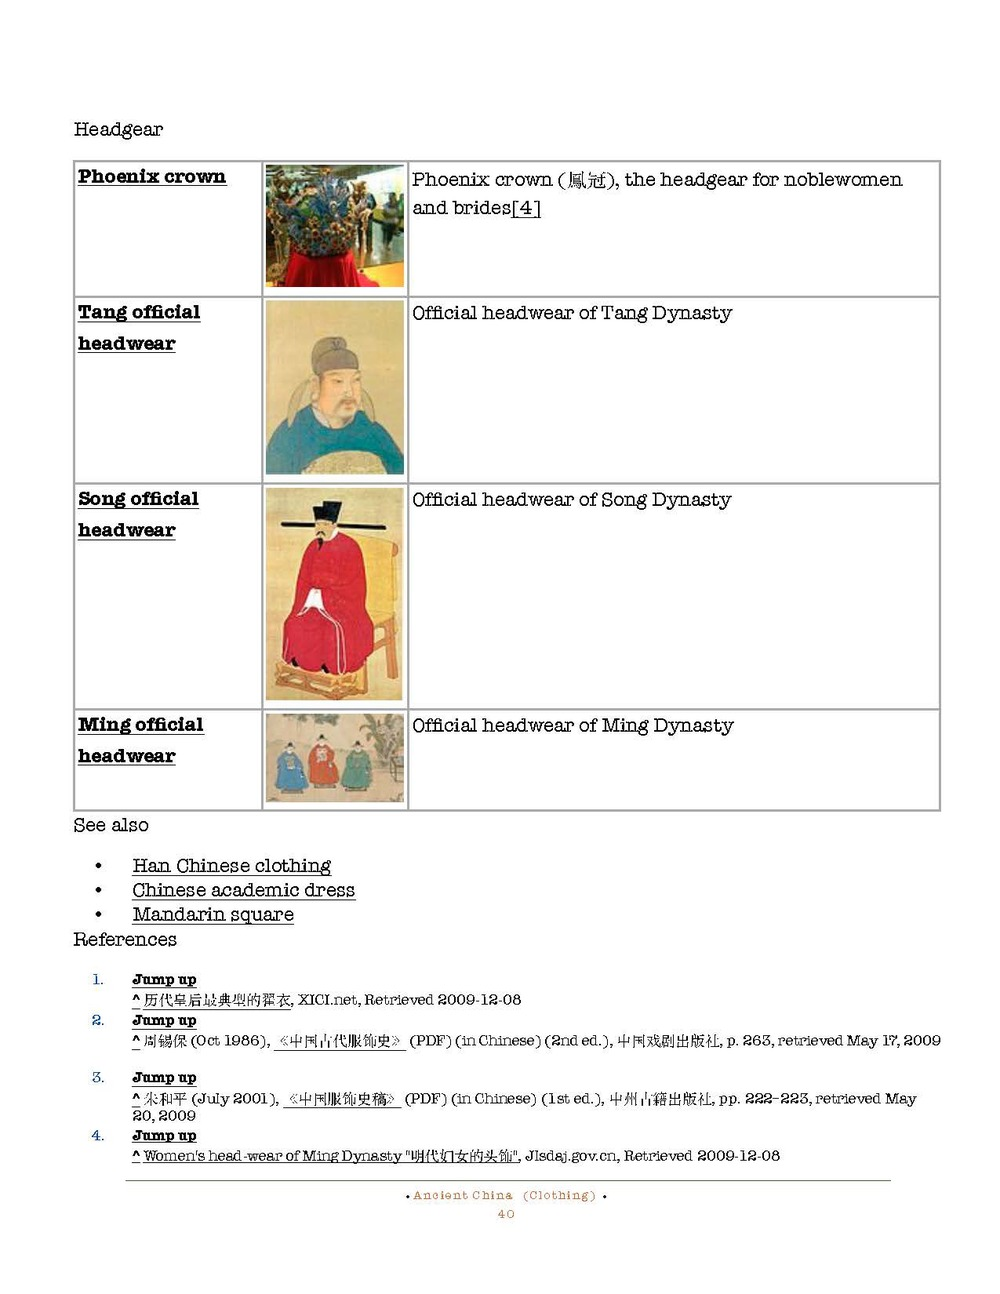 HOCE- Ancient China Notes (clothing)_Page_40.jpg